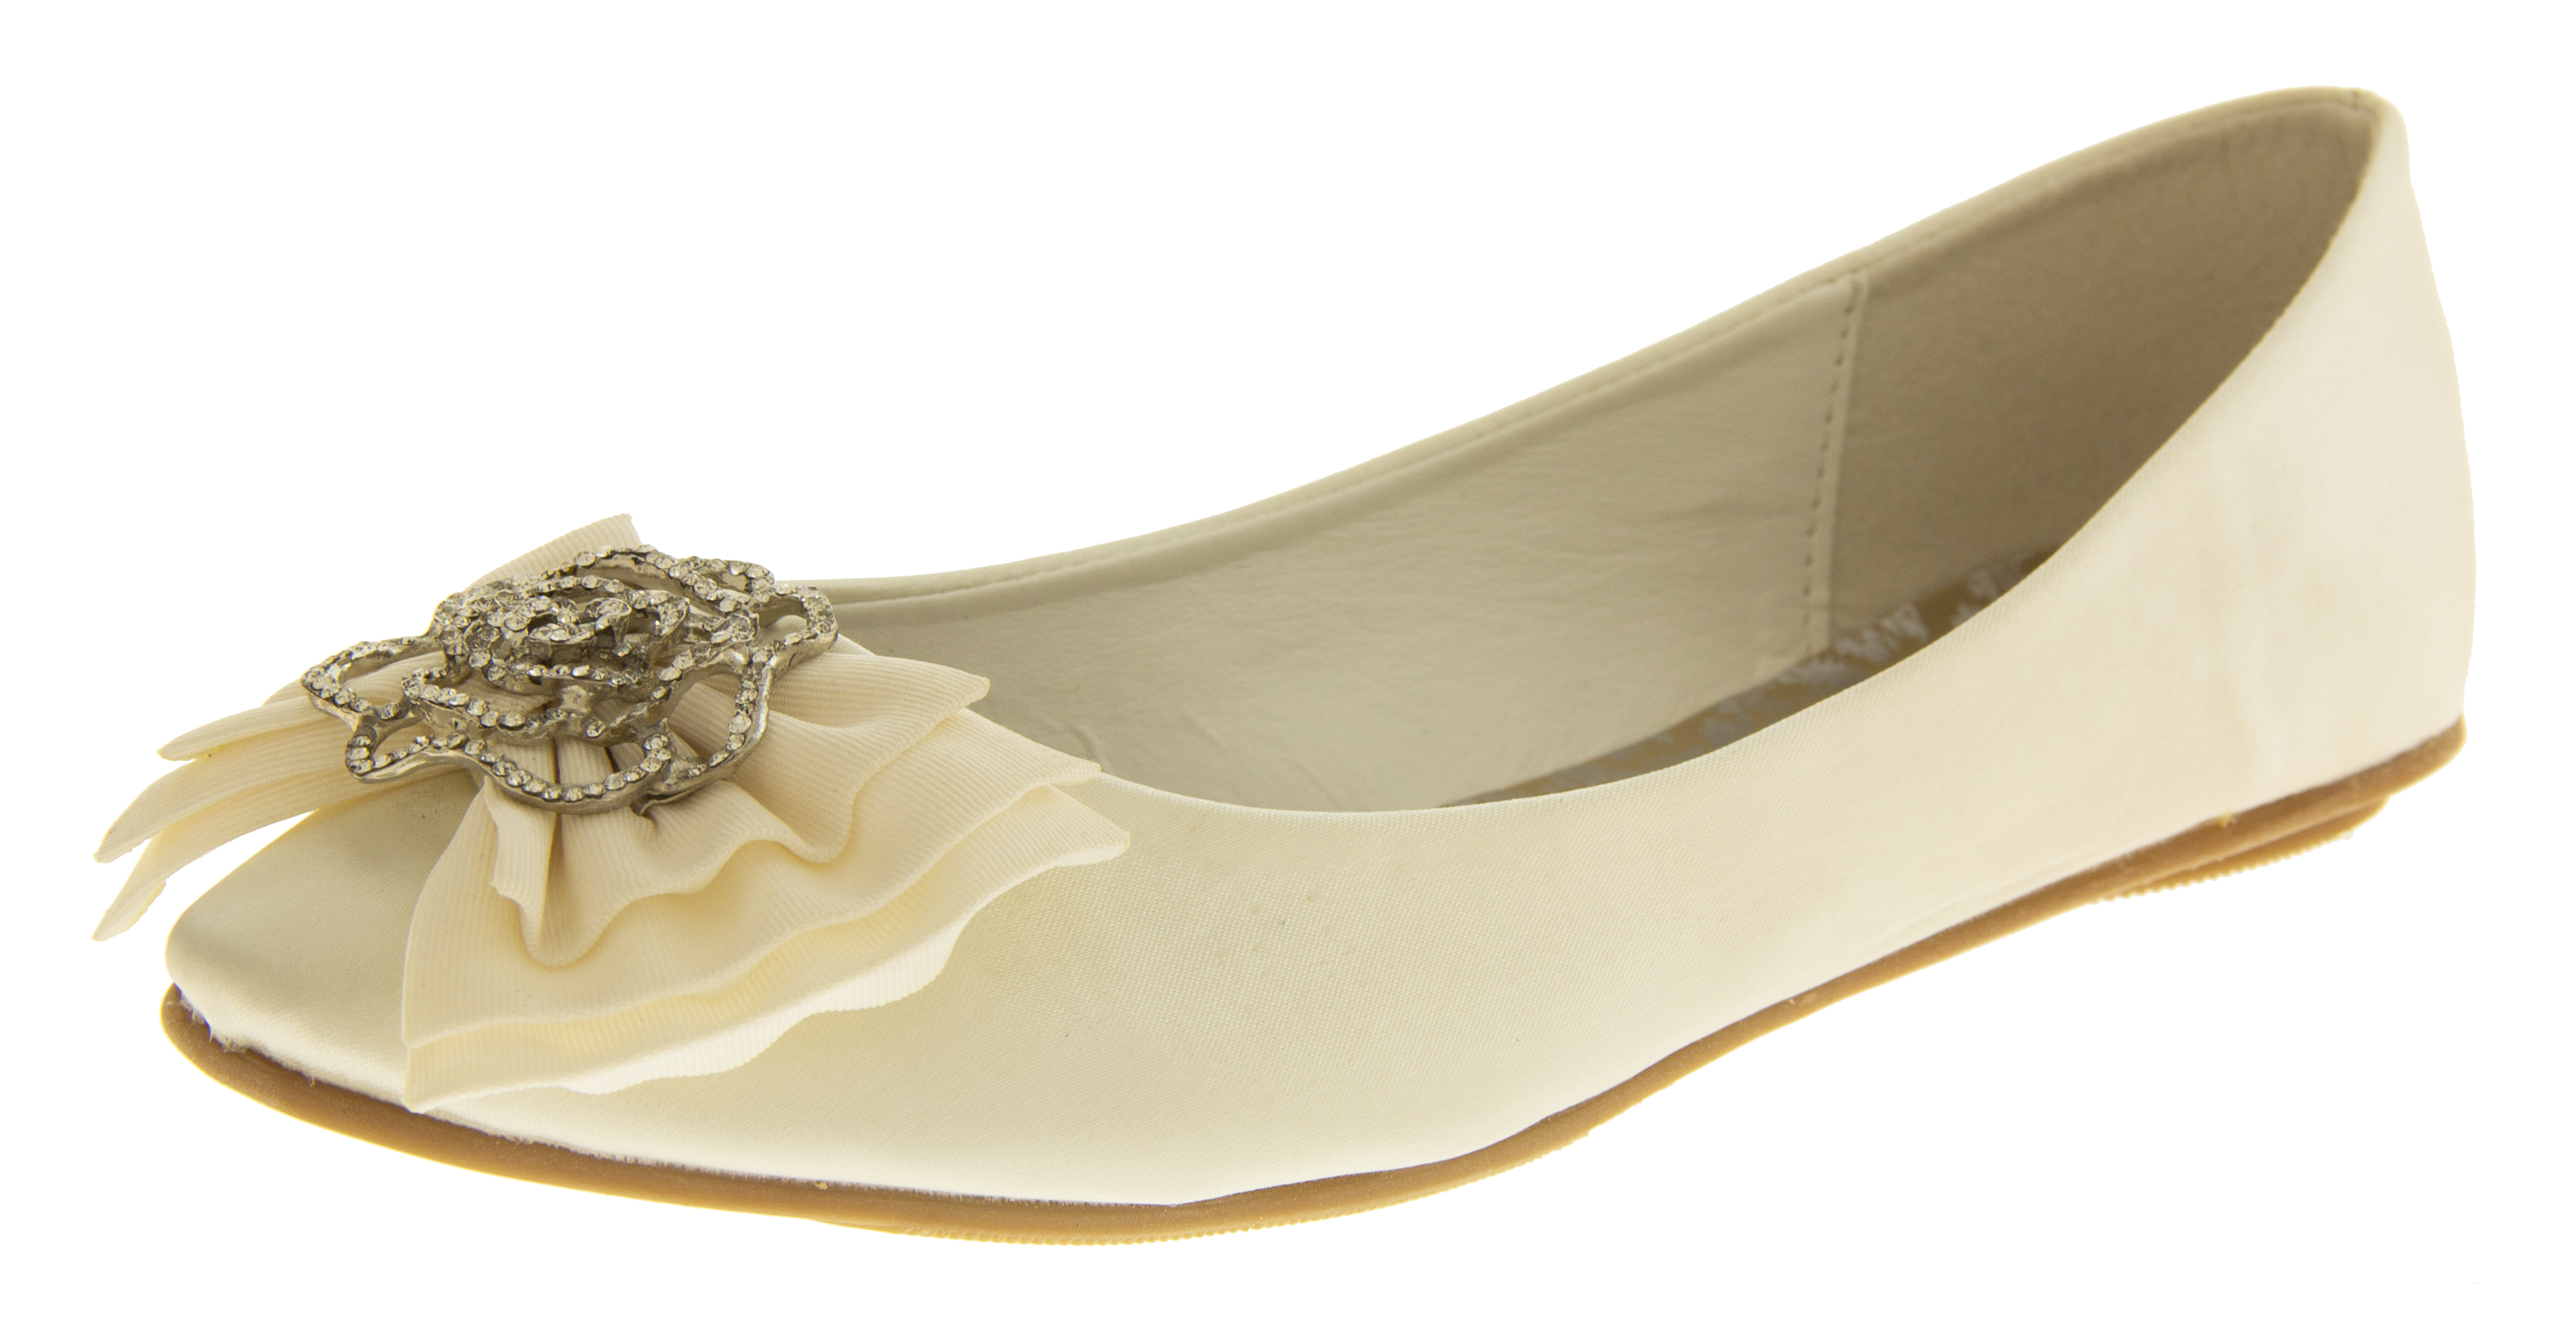 Comfortable, designer ballet flats you can fit in your purse and wear all day, every day.